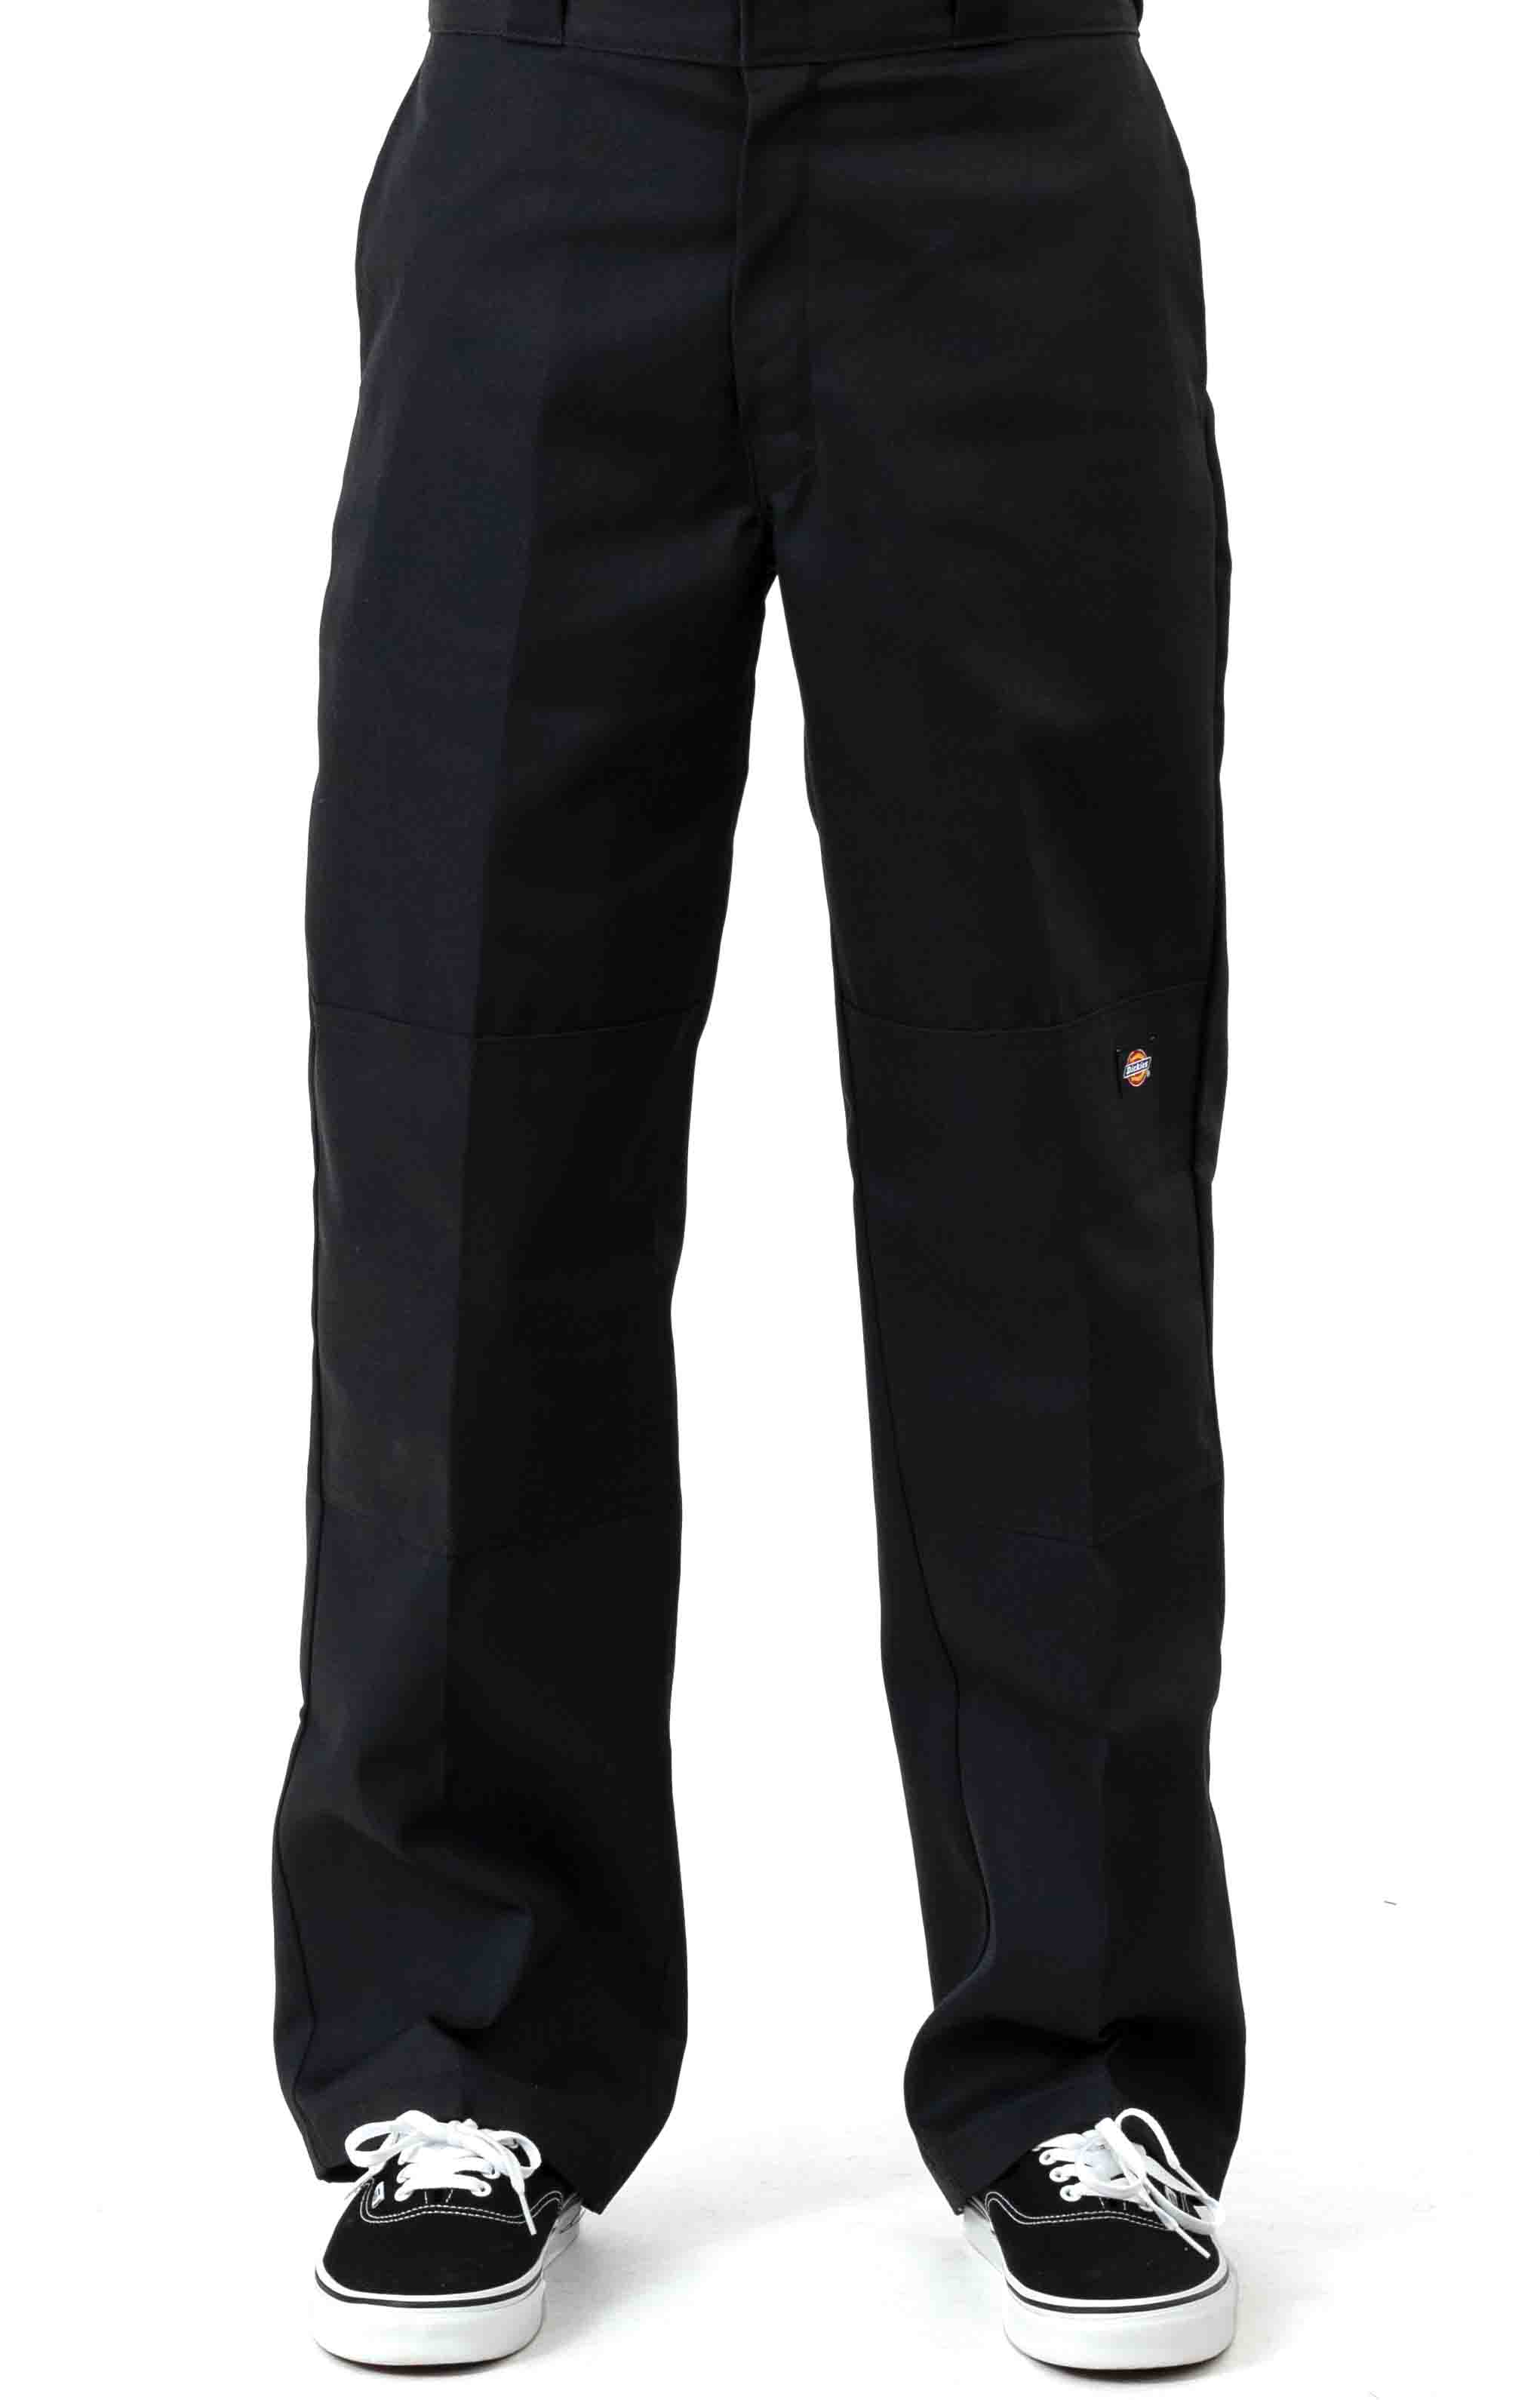 (WP852BK) Relaxed Fit Straight Leg Double Knee Pants - Black